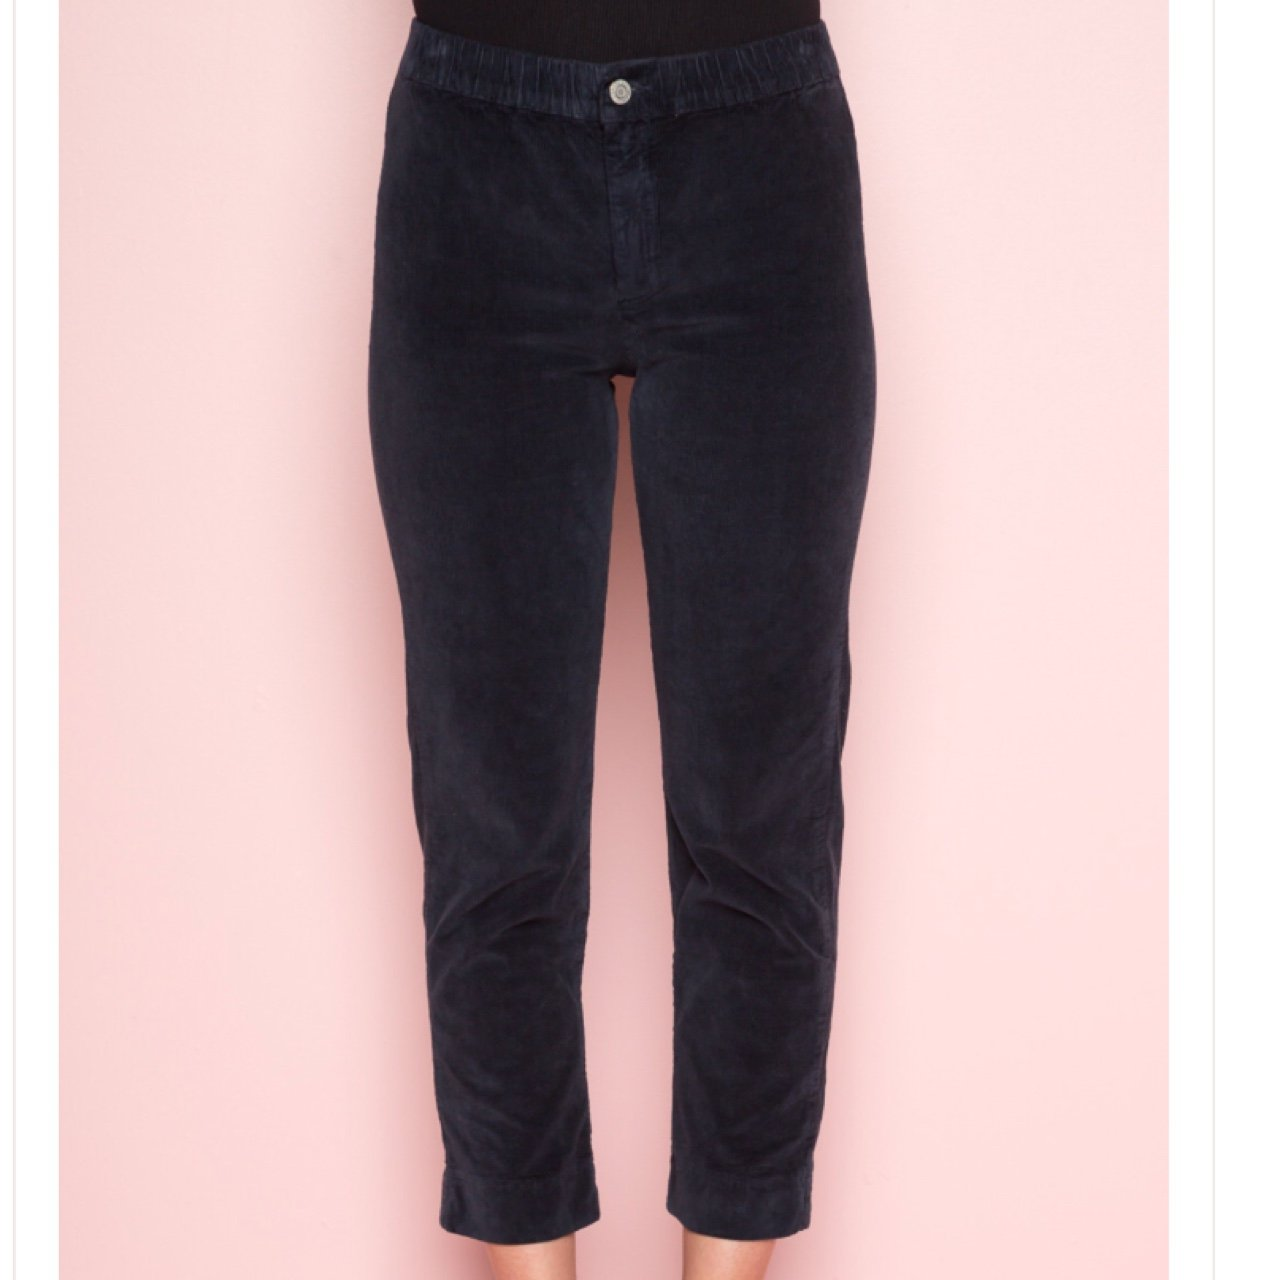 027a4dff454dce for @alyssakangy Brandy Melville Autumn Corduroy Pants in IN - Depop